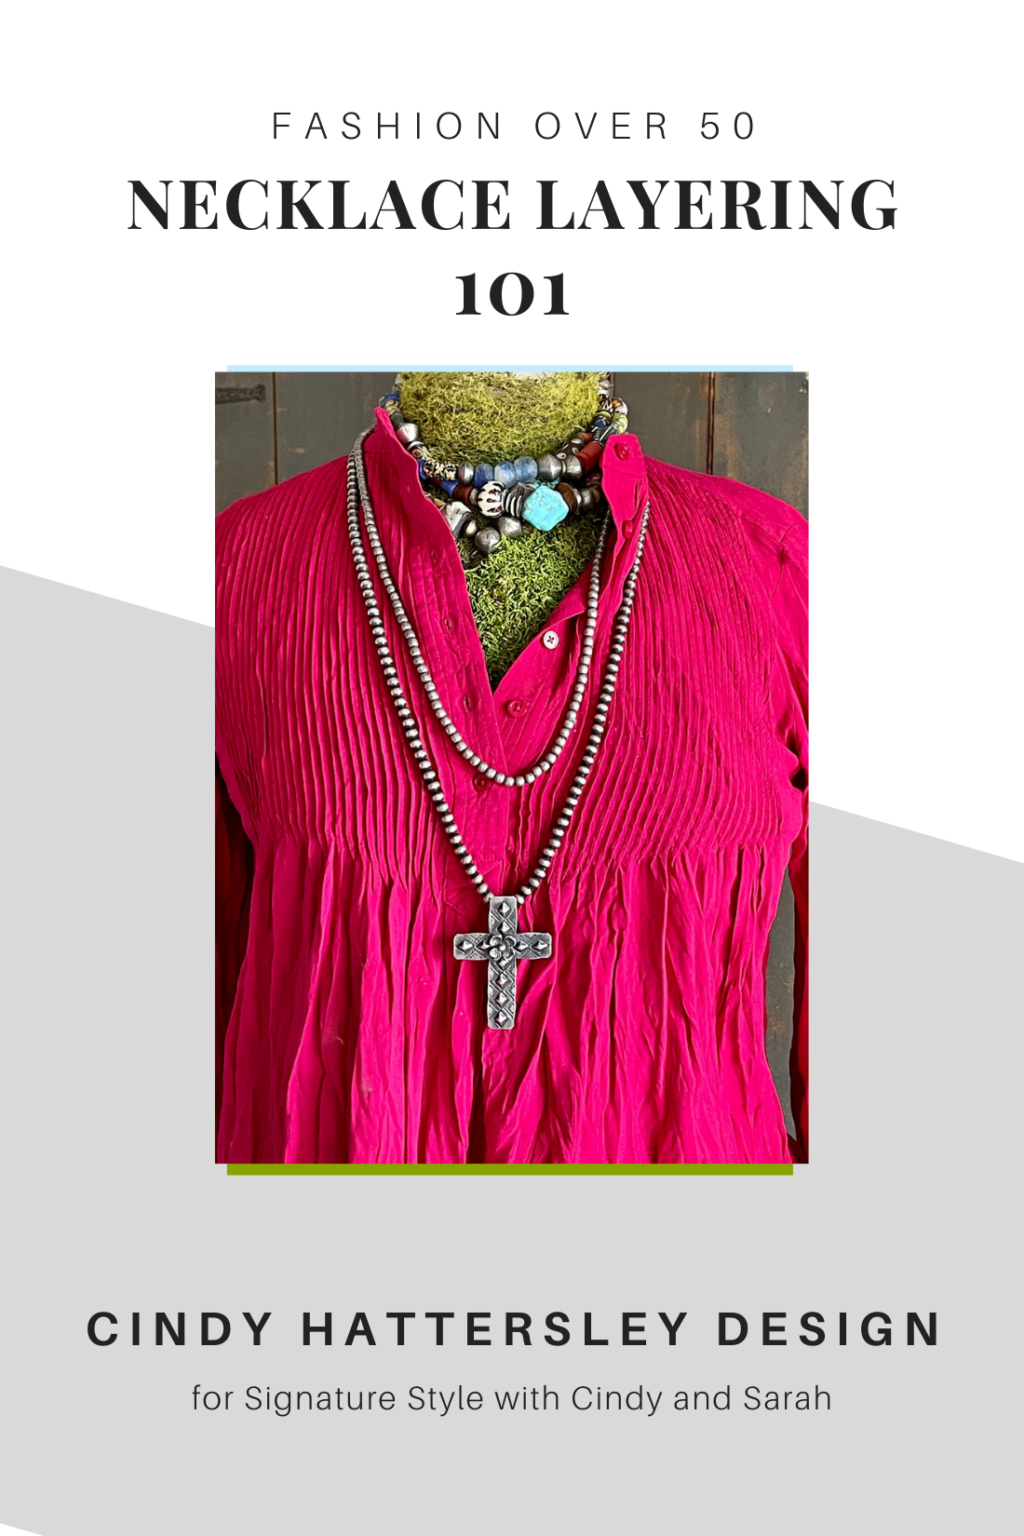 Necklace layering 101 on Cindy Hattersley's blog